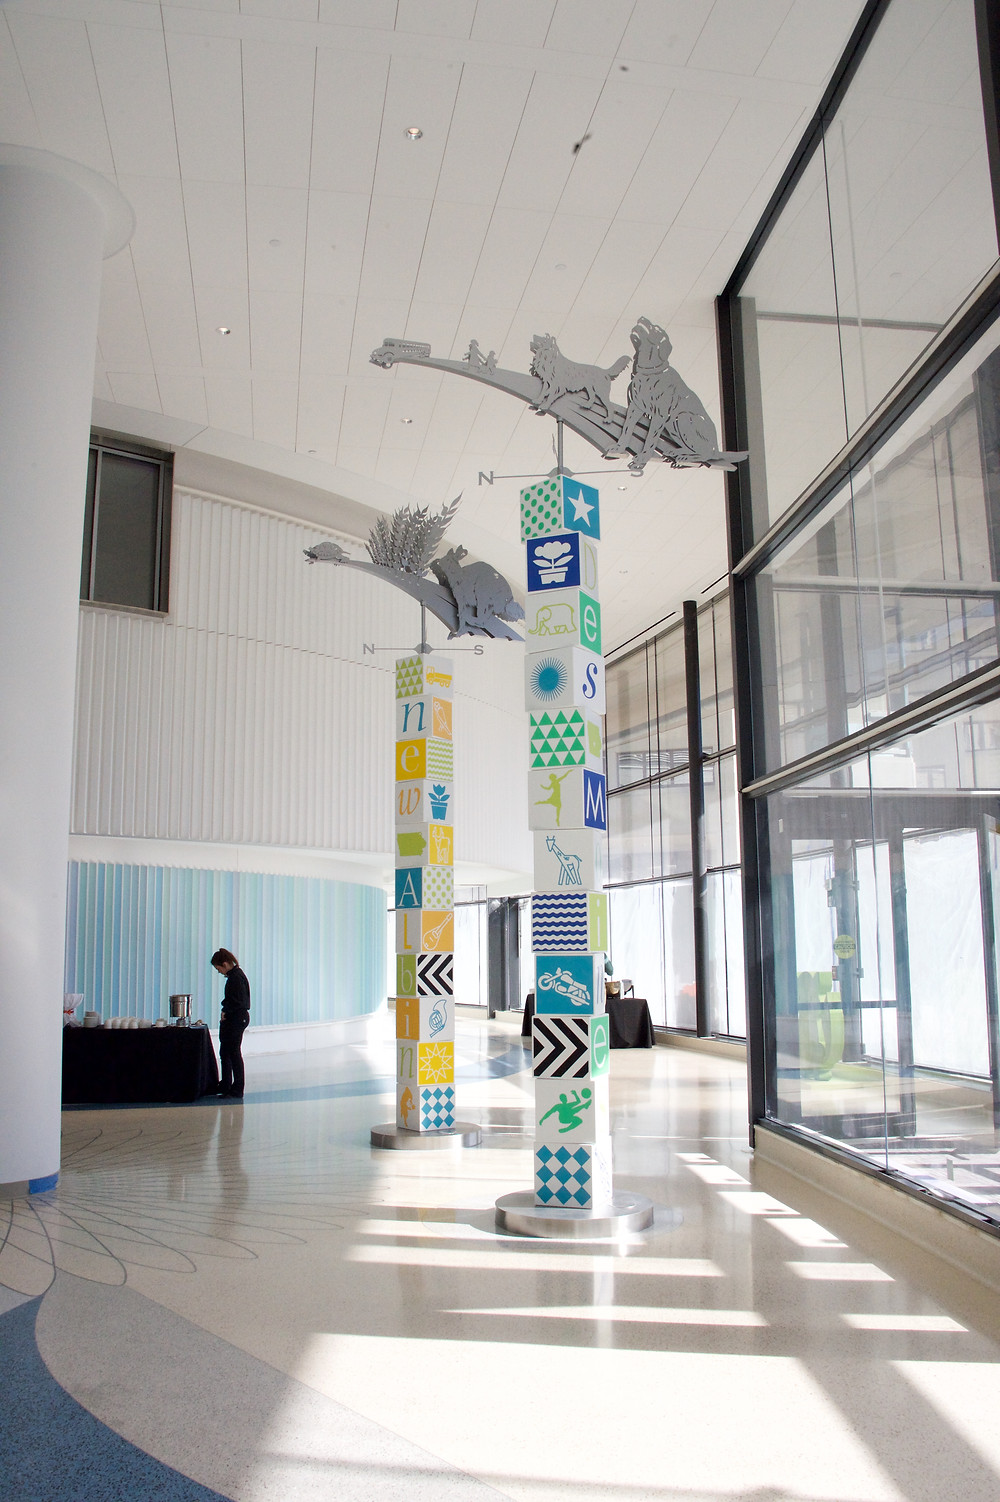 corian, color inlays in solid surface, iowa children's hospital, solid surface artwork